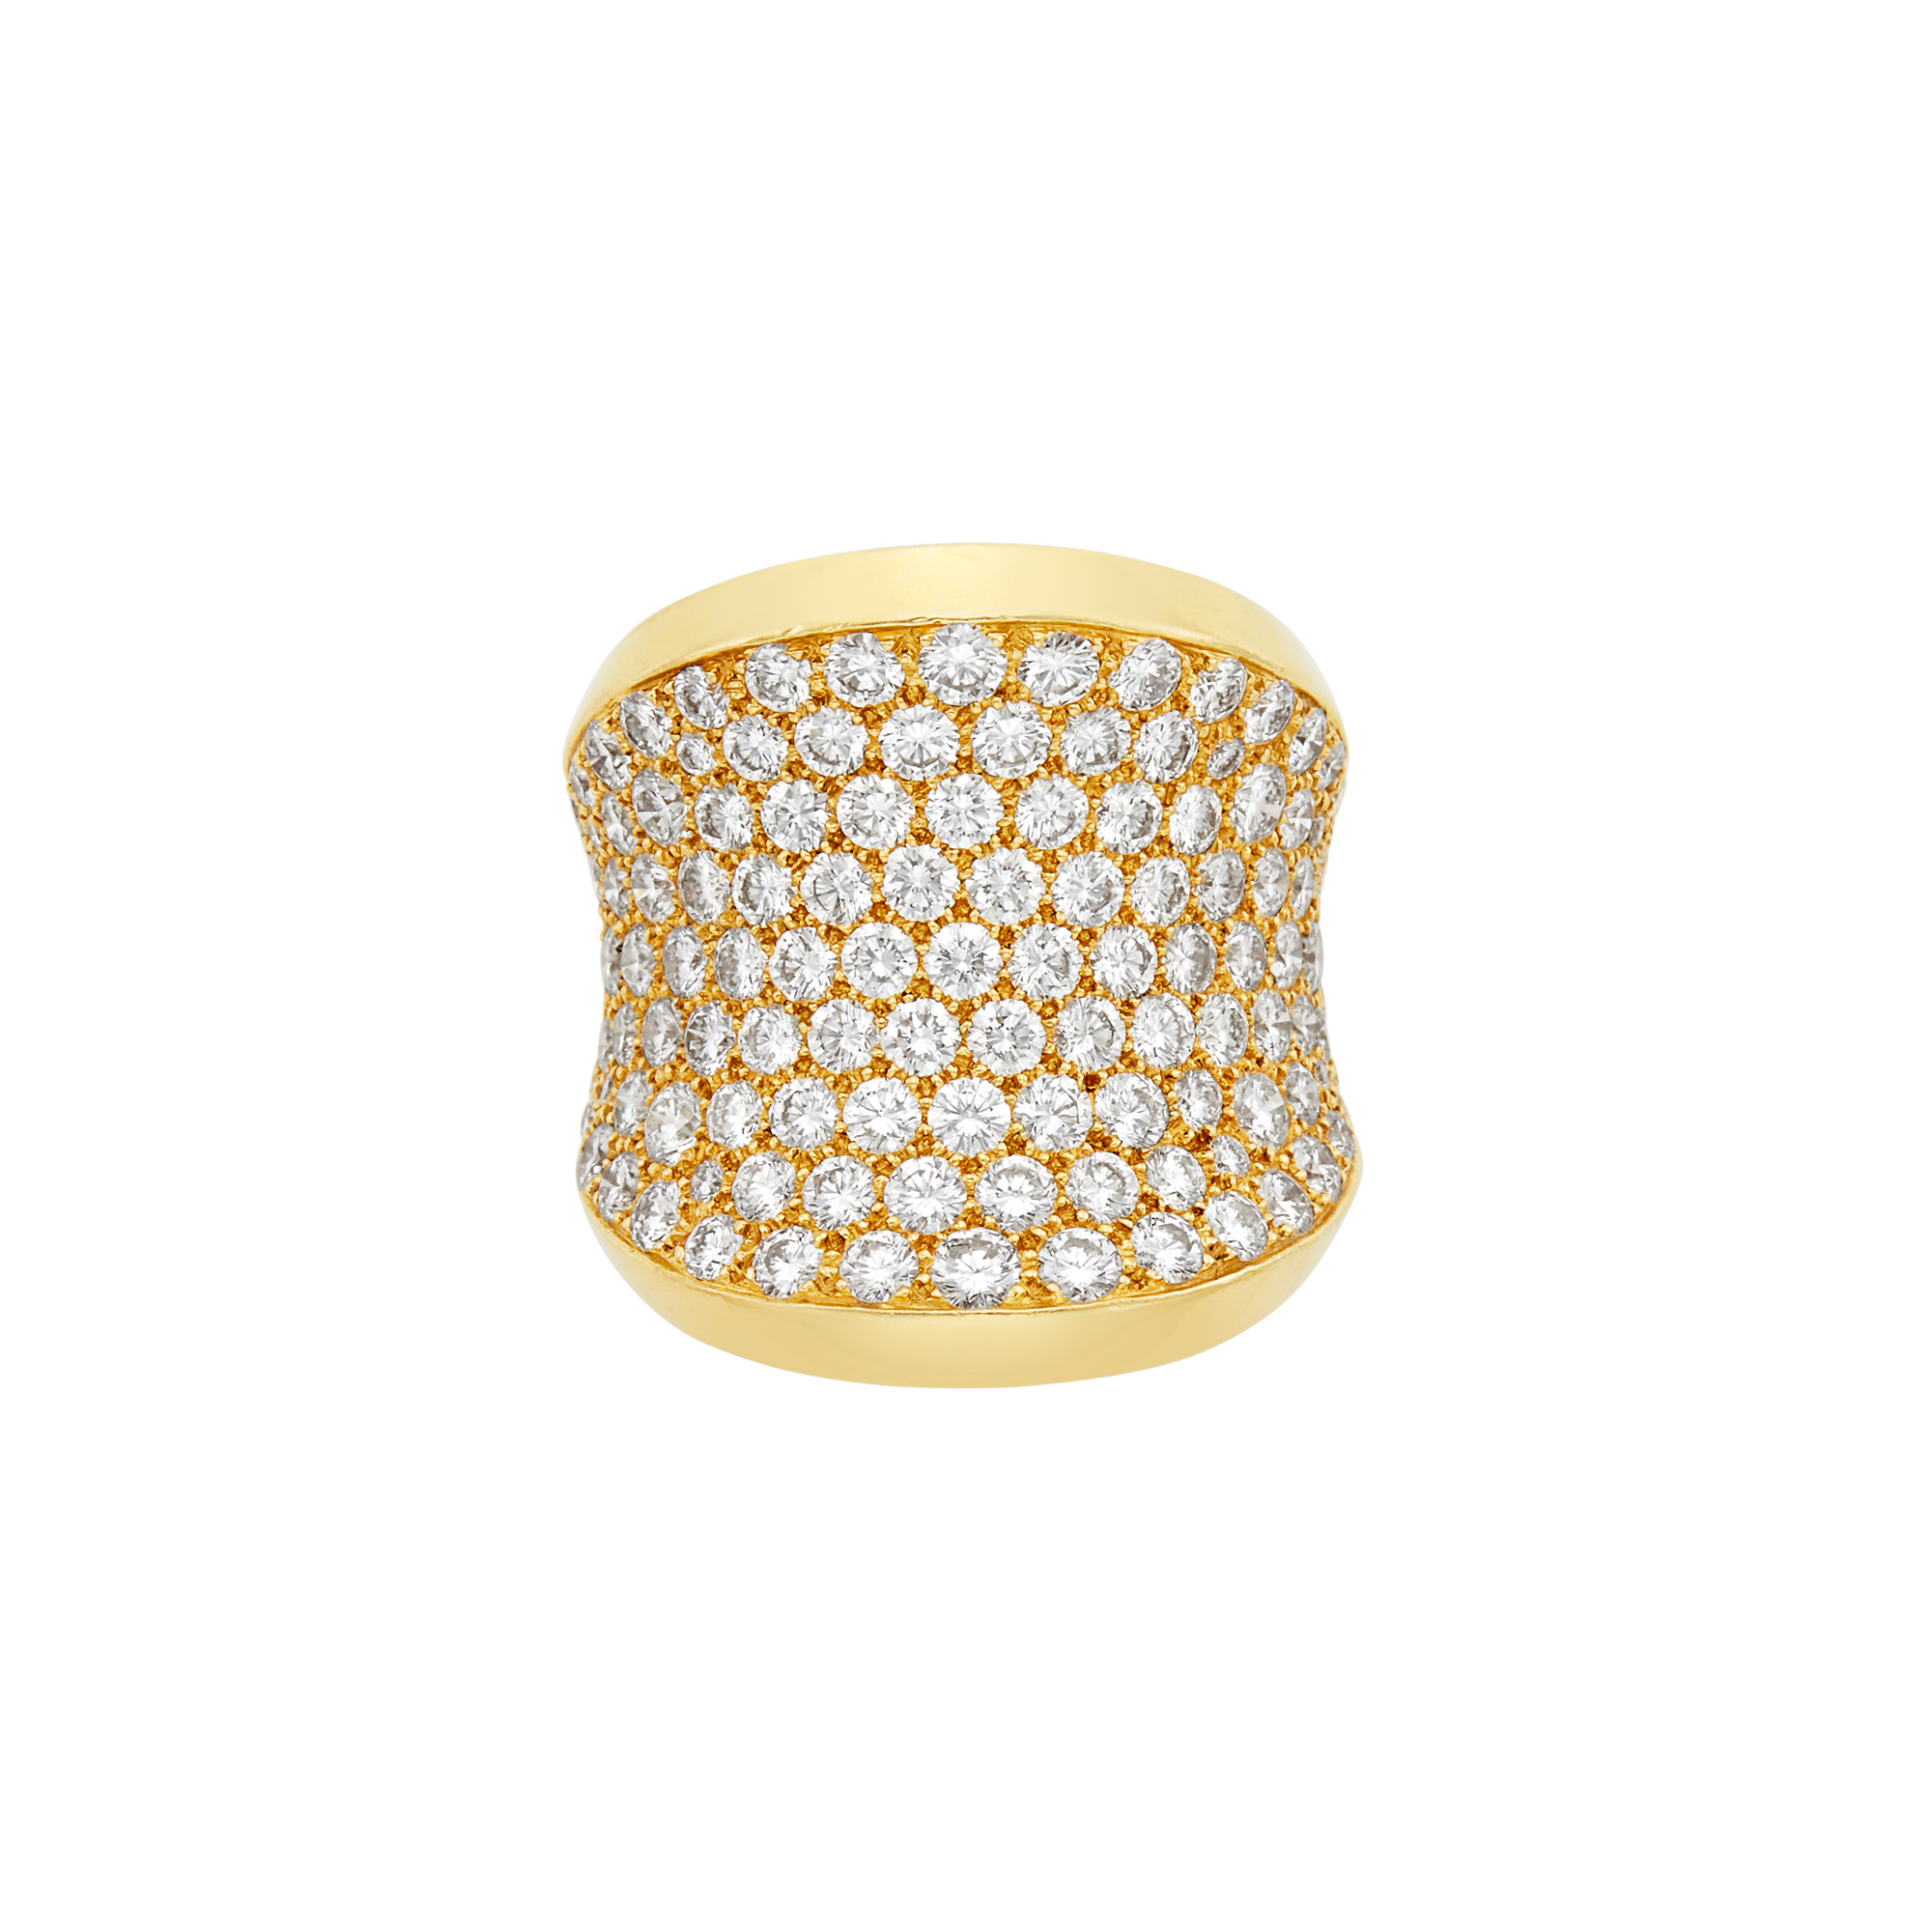 Lot image - Wide Gold and Diamond Concave Ring, Cartier, France